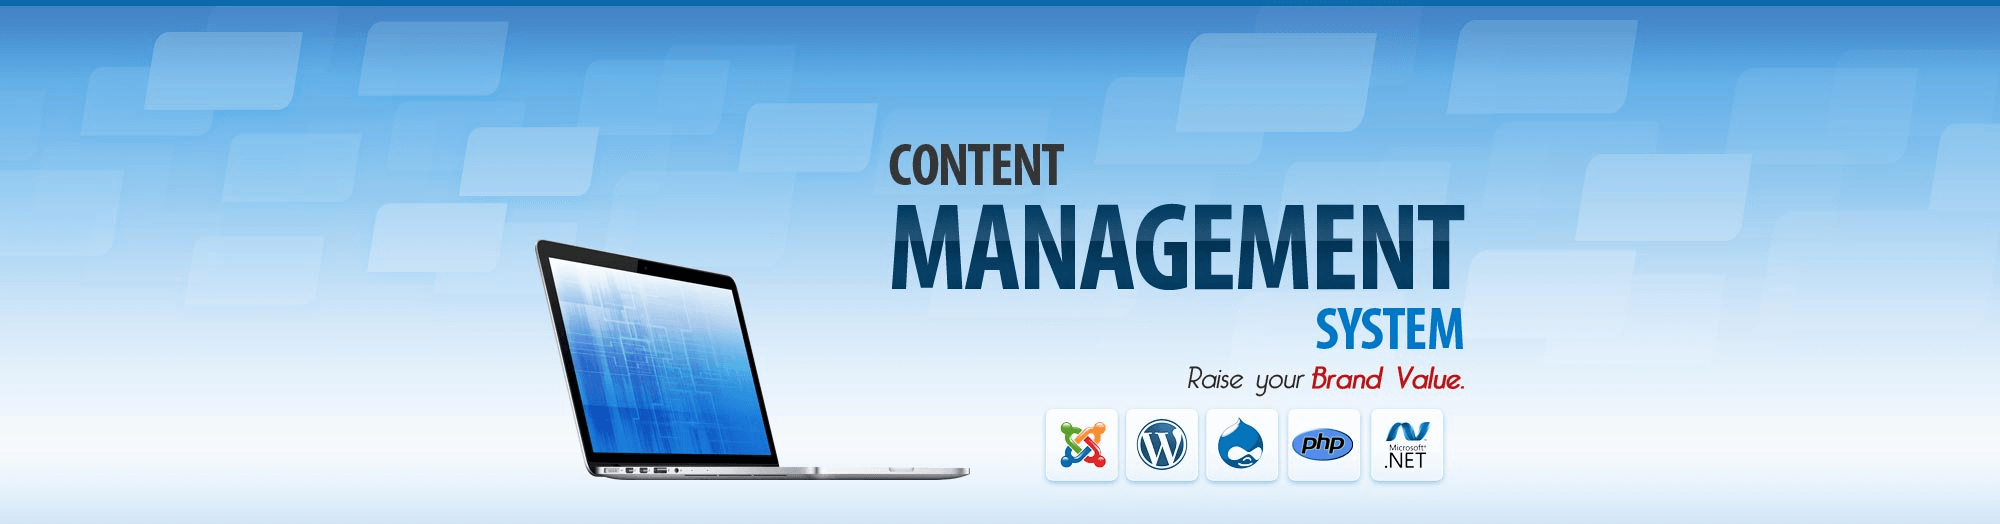 Content Management System Banner